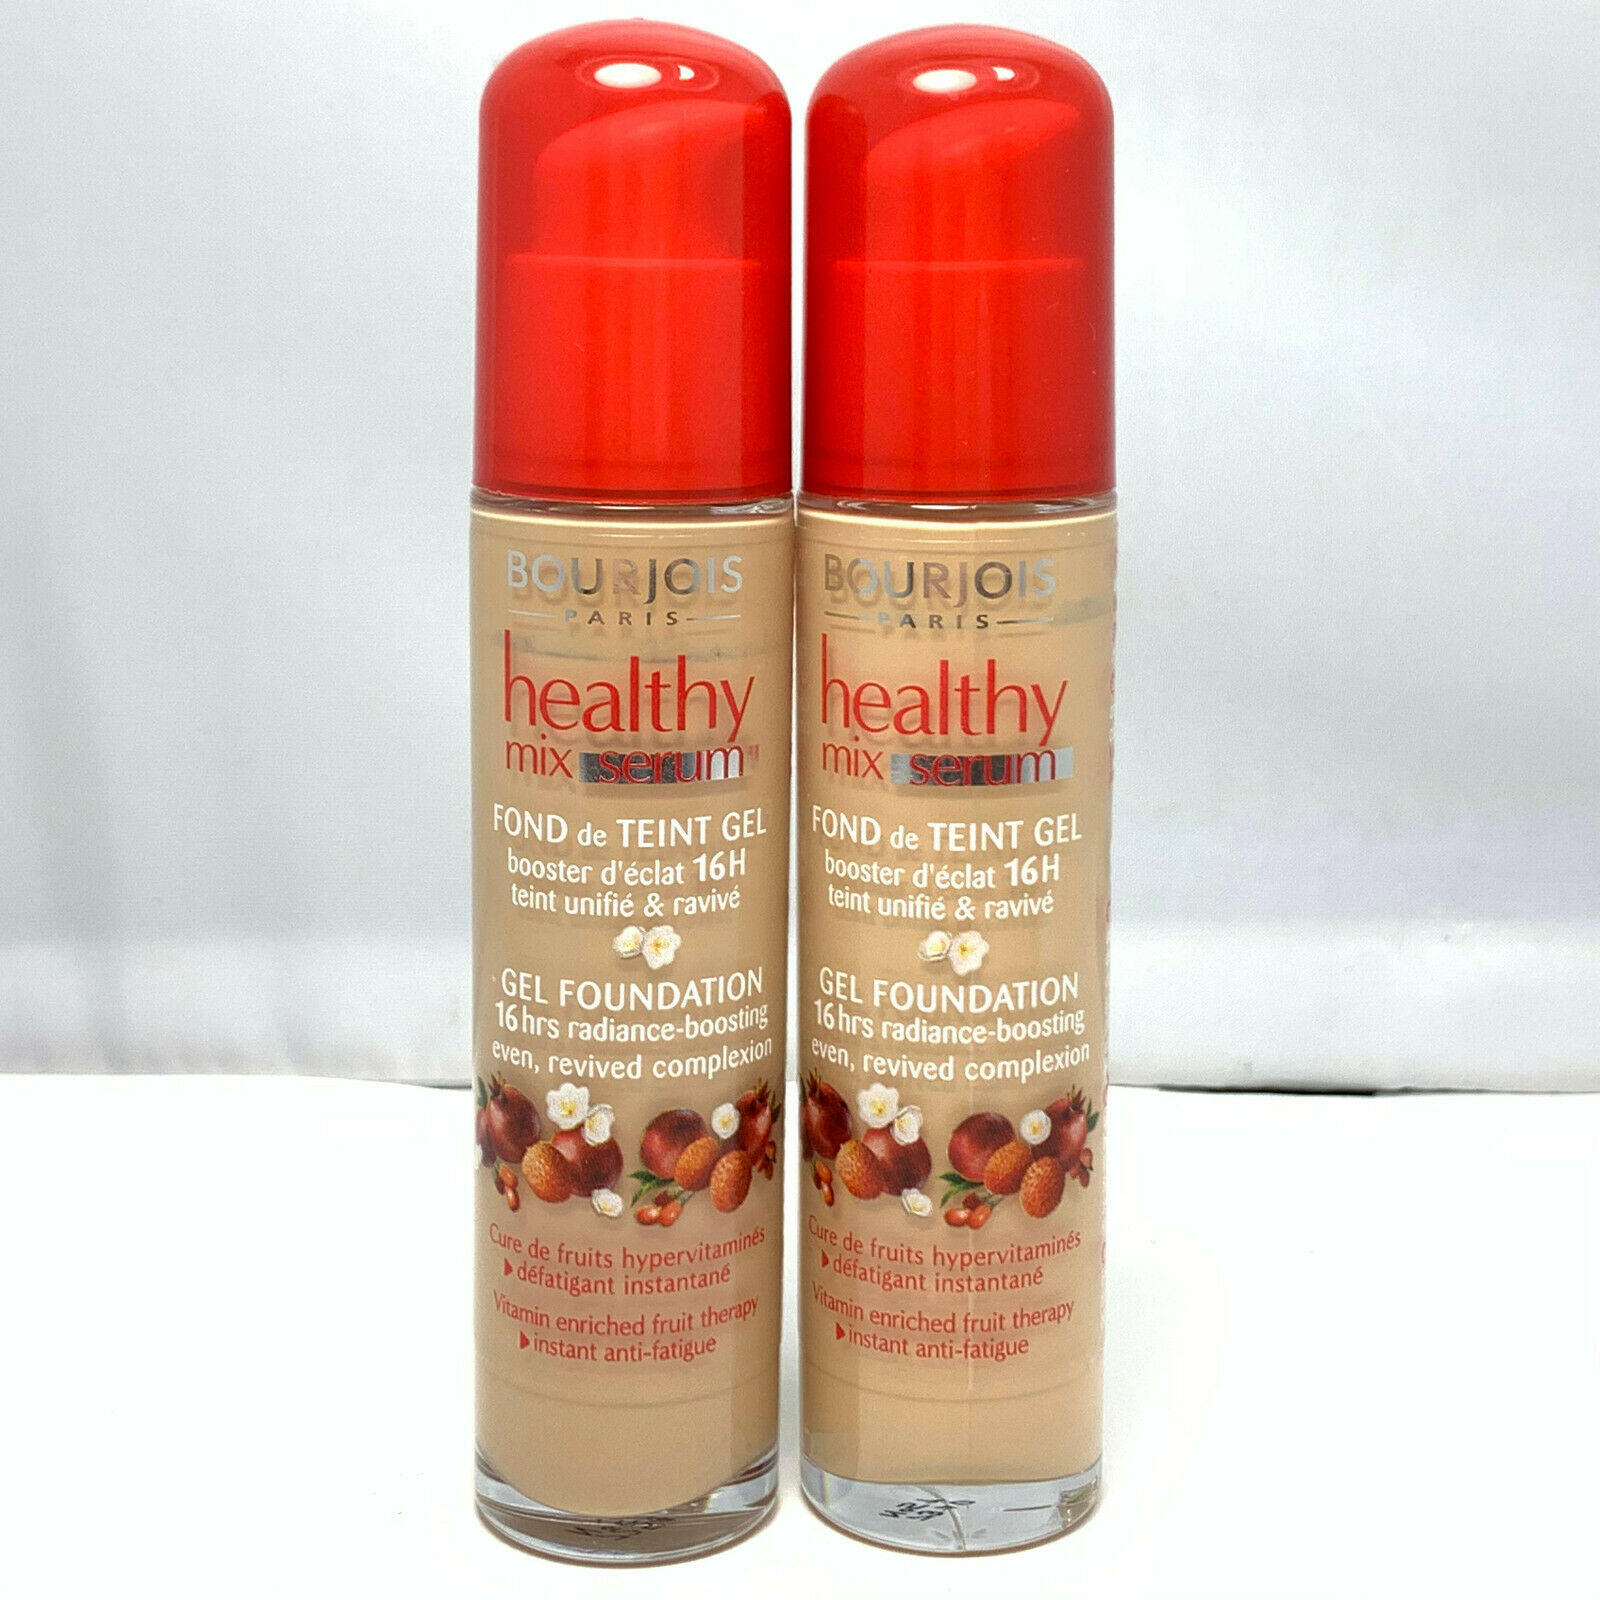 2 X Bourjois Healthy Mix Radiance Reveal Foundation 30ml 51 Light Vanilla For Sale Online Ebay